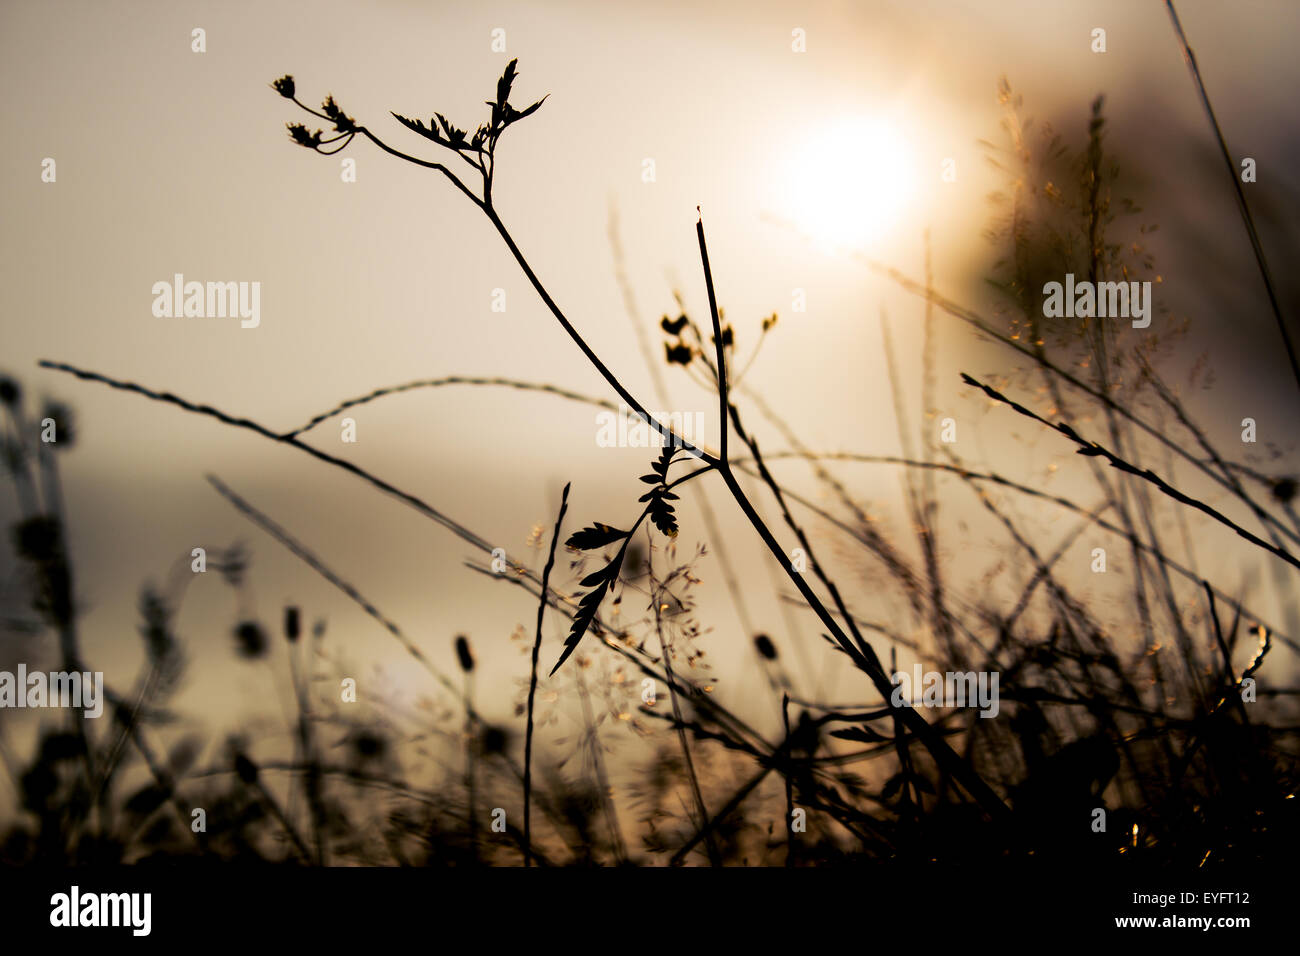 Grass silhouettes in a sunset light Stock Photo